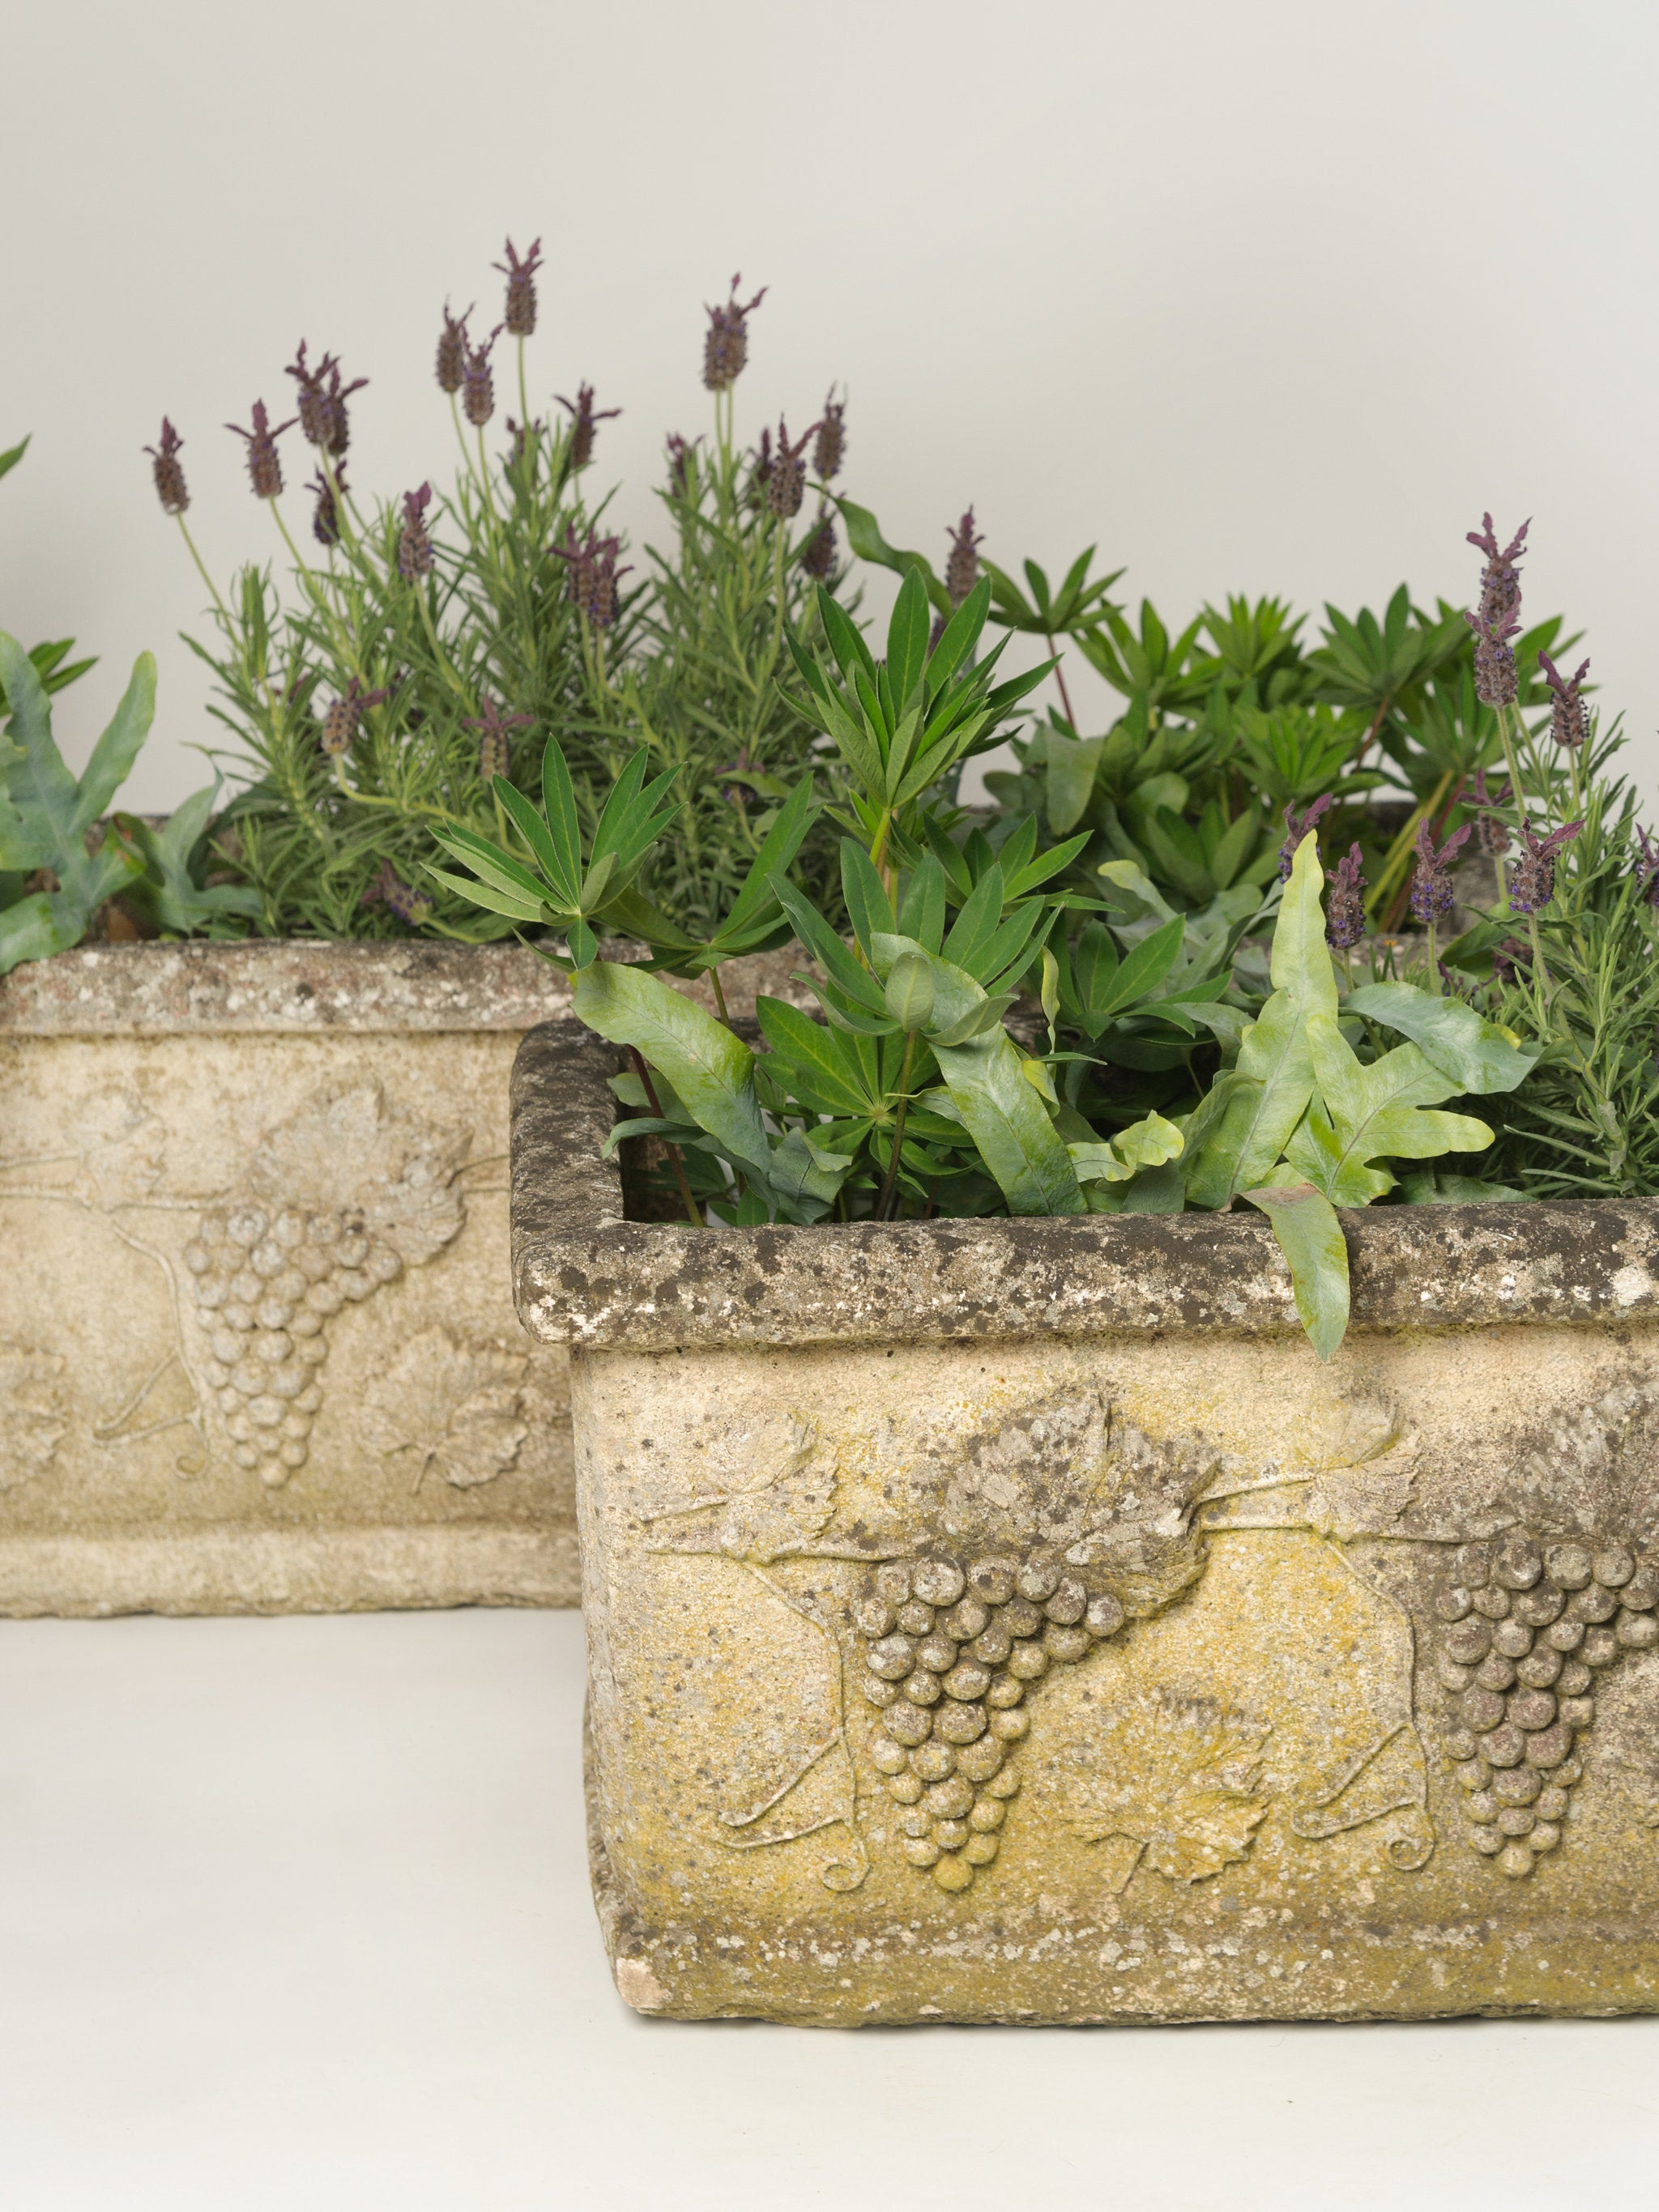 flowers estate wood tiled patio buy box planter teak filled with supply on trough gardeners planters